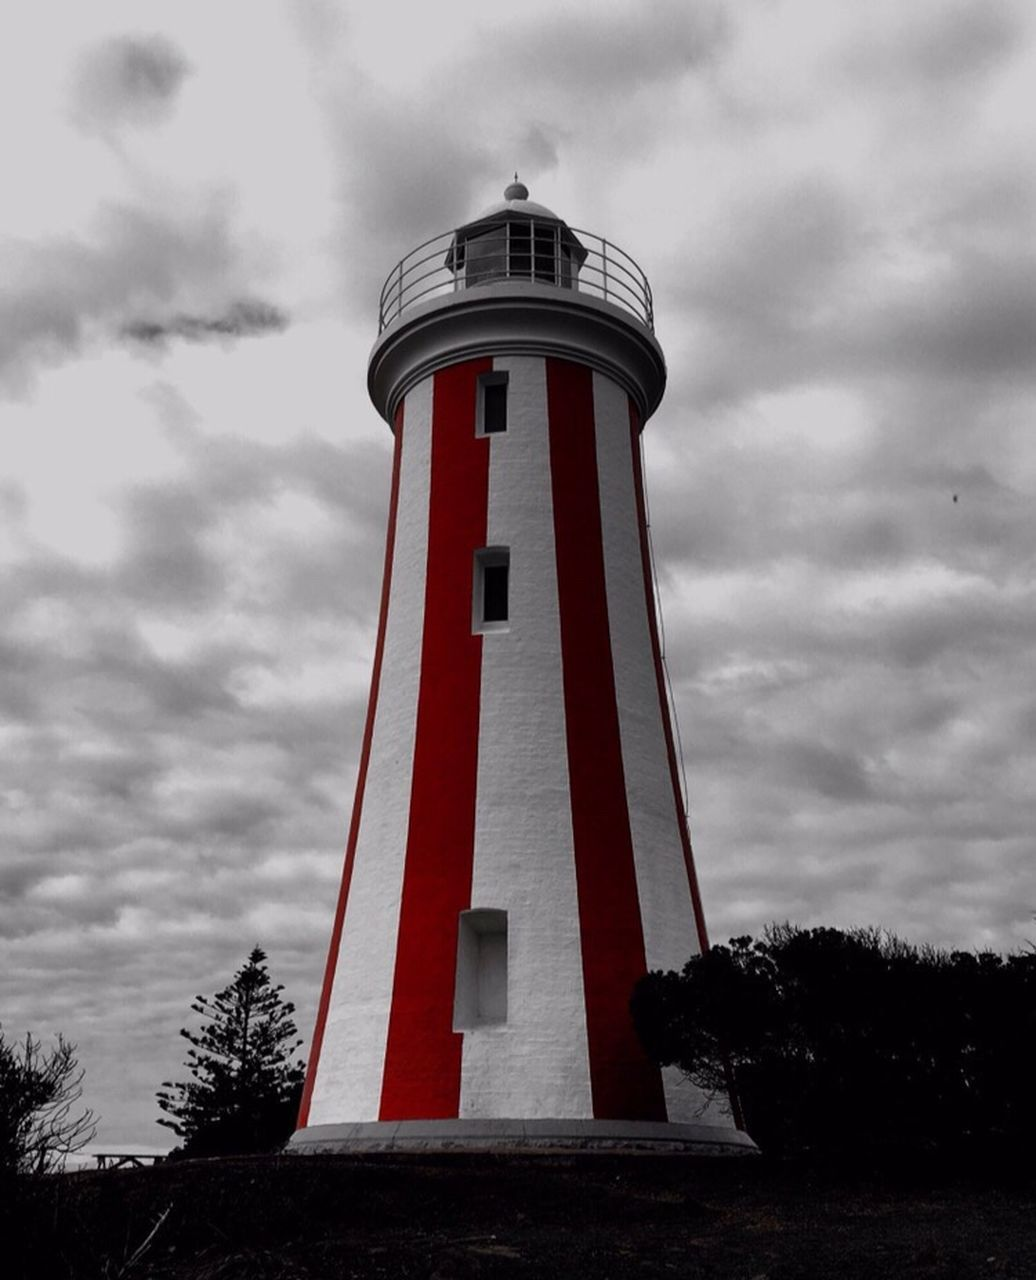 lighthouse, cloud - sky, sky, safety, tower, low angle view, protection, guidance, day, direction, outdoors, tree, architecture, red, no people, building exterior, built structure, nature